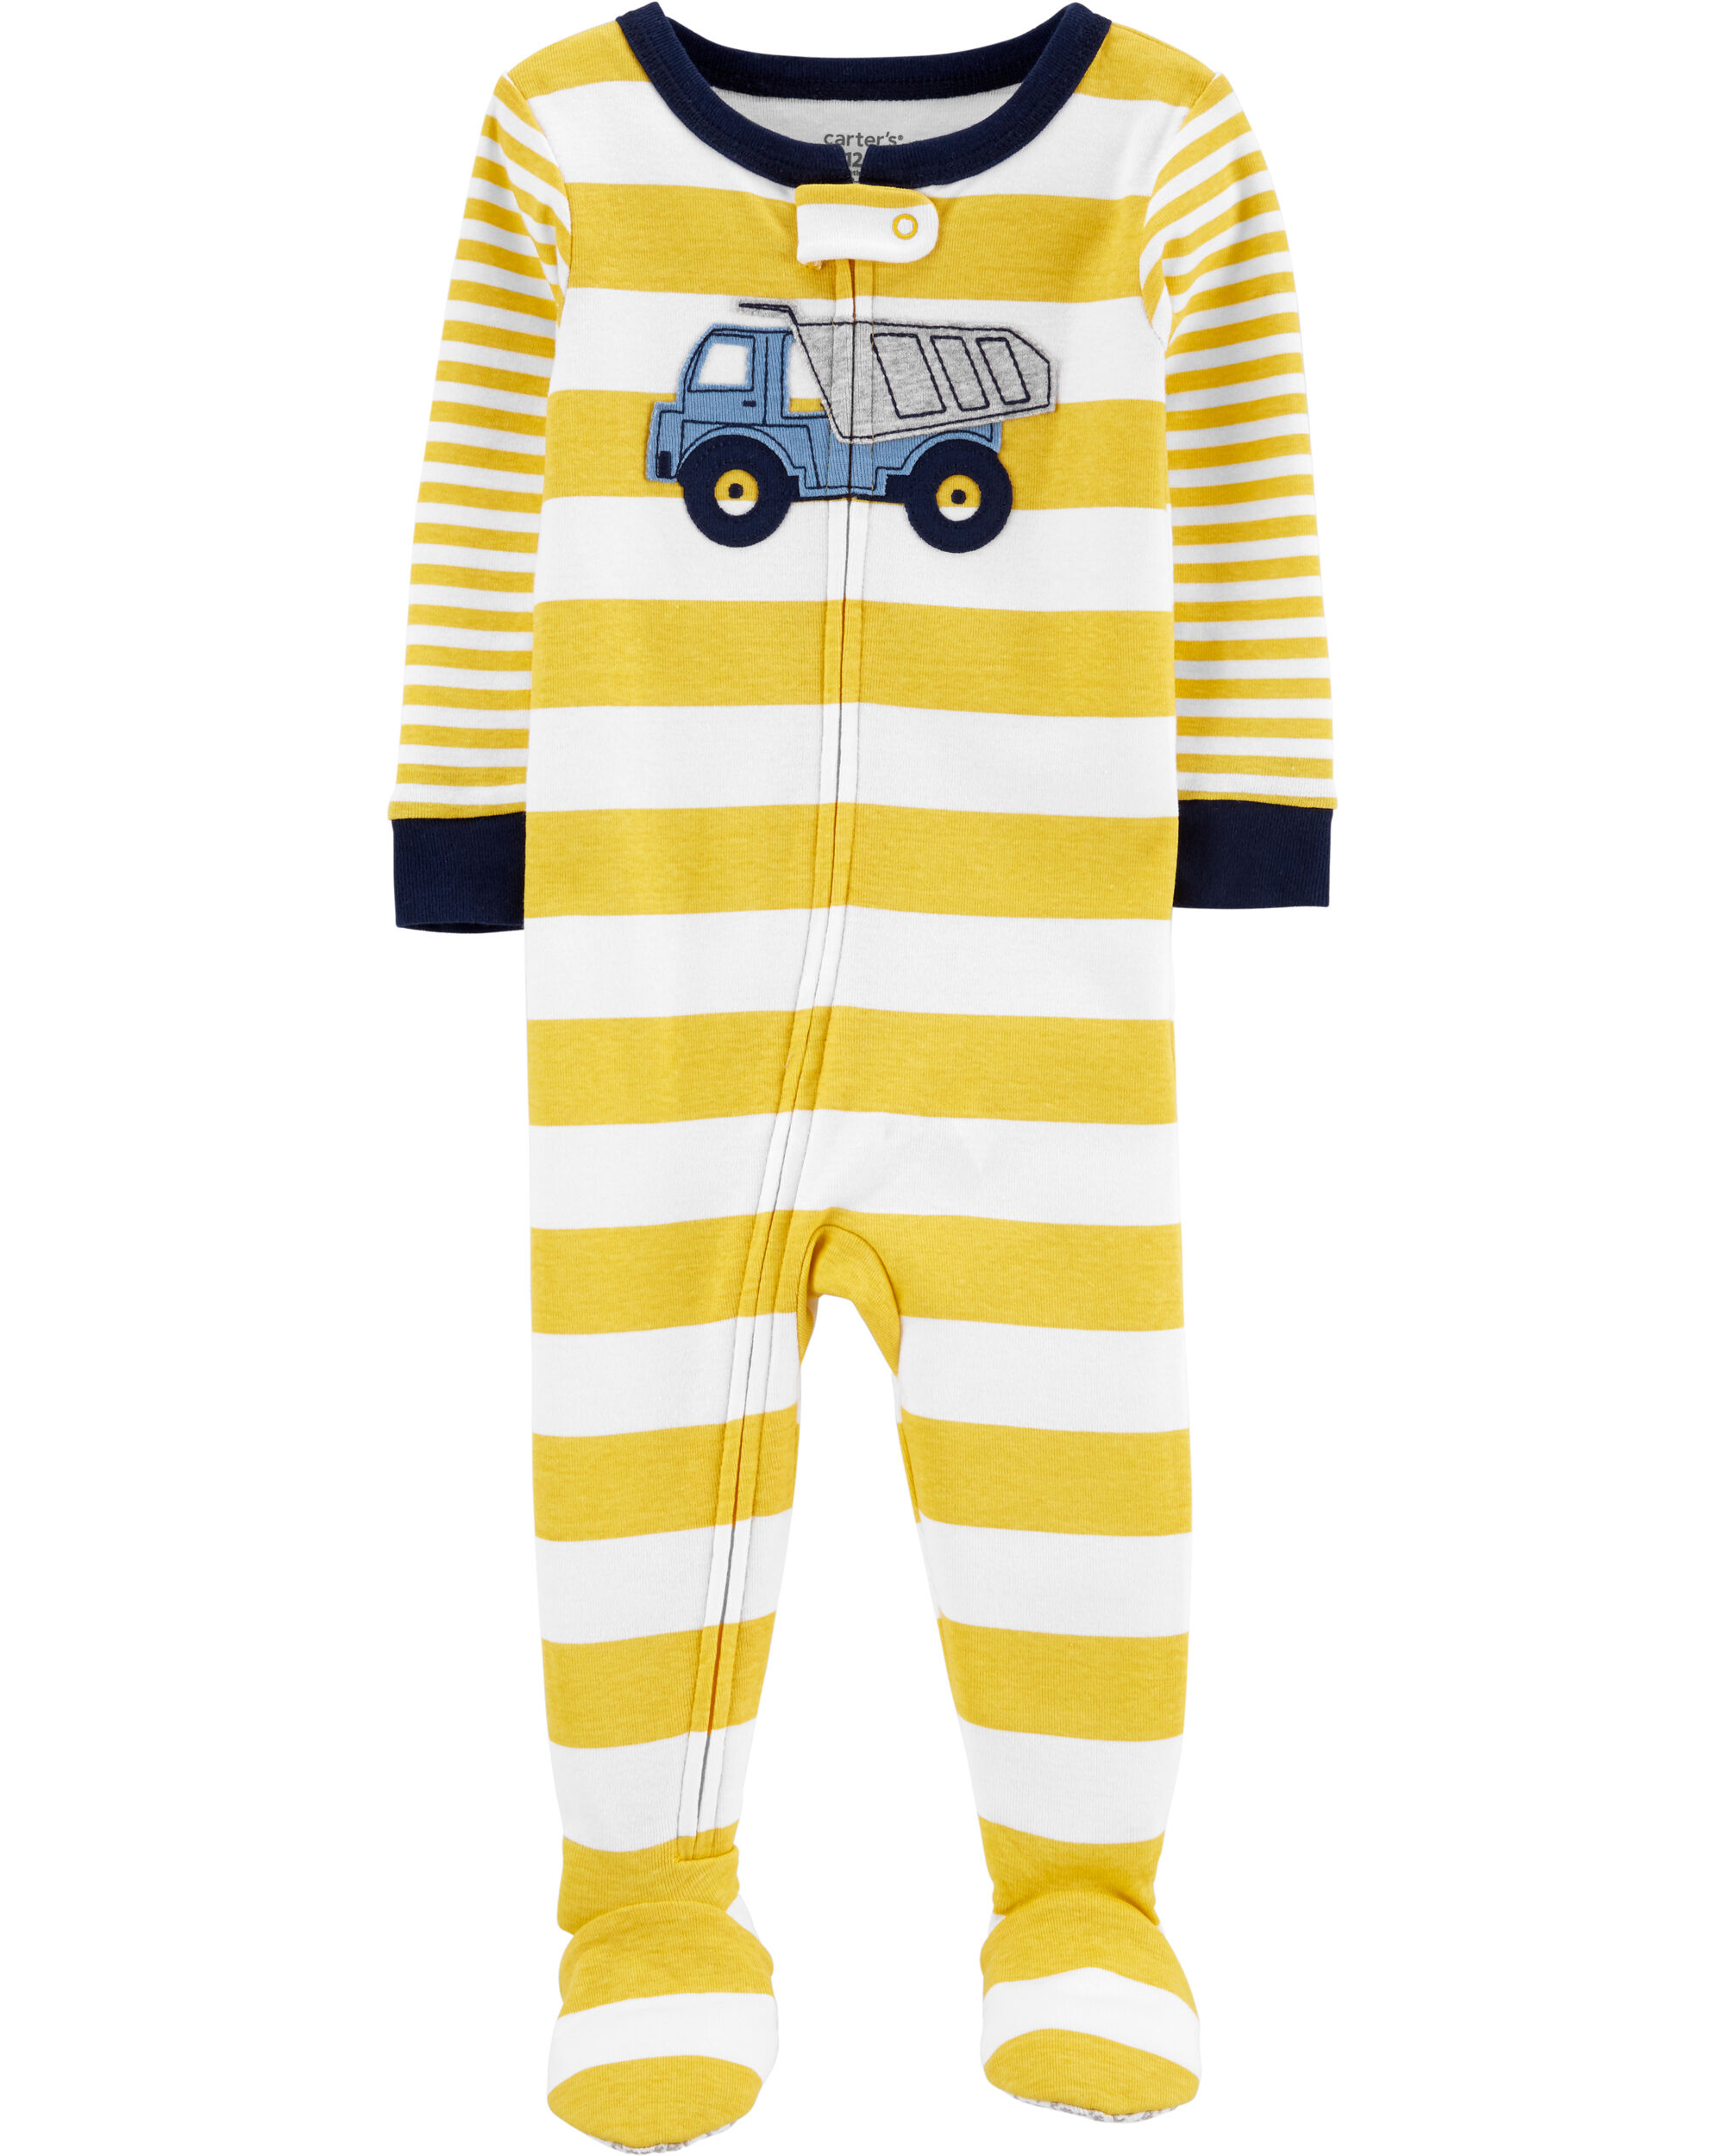 NEW Baby Boys Bodysuit Size Preemie Footed Sleeper Outfit PJs Constuction Trucks